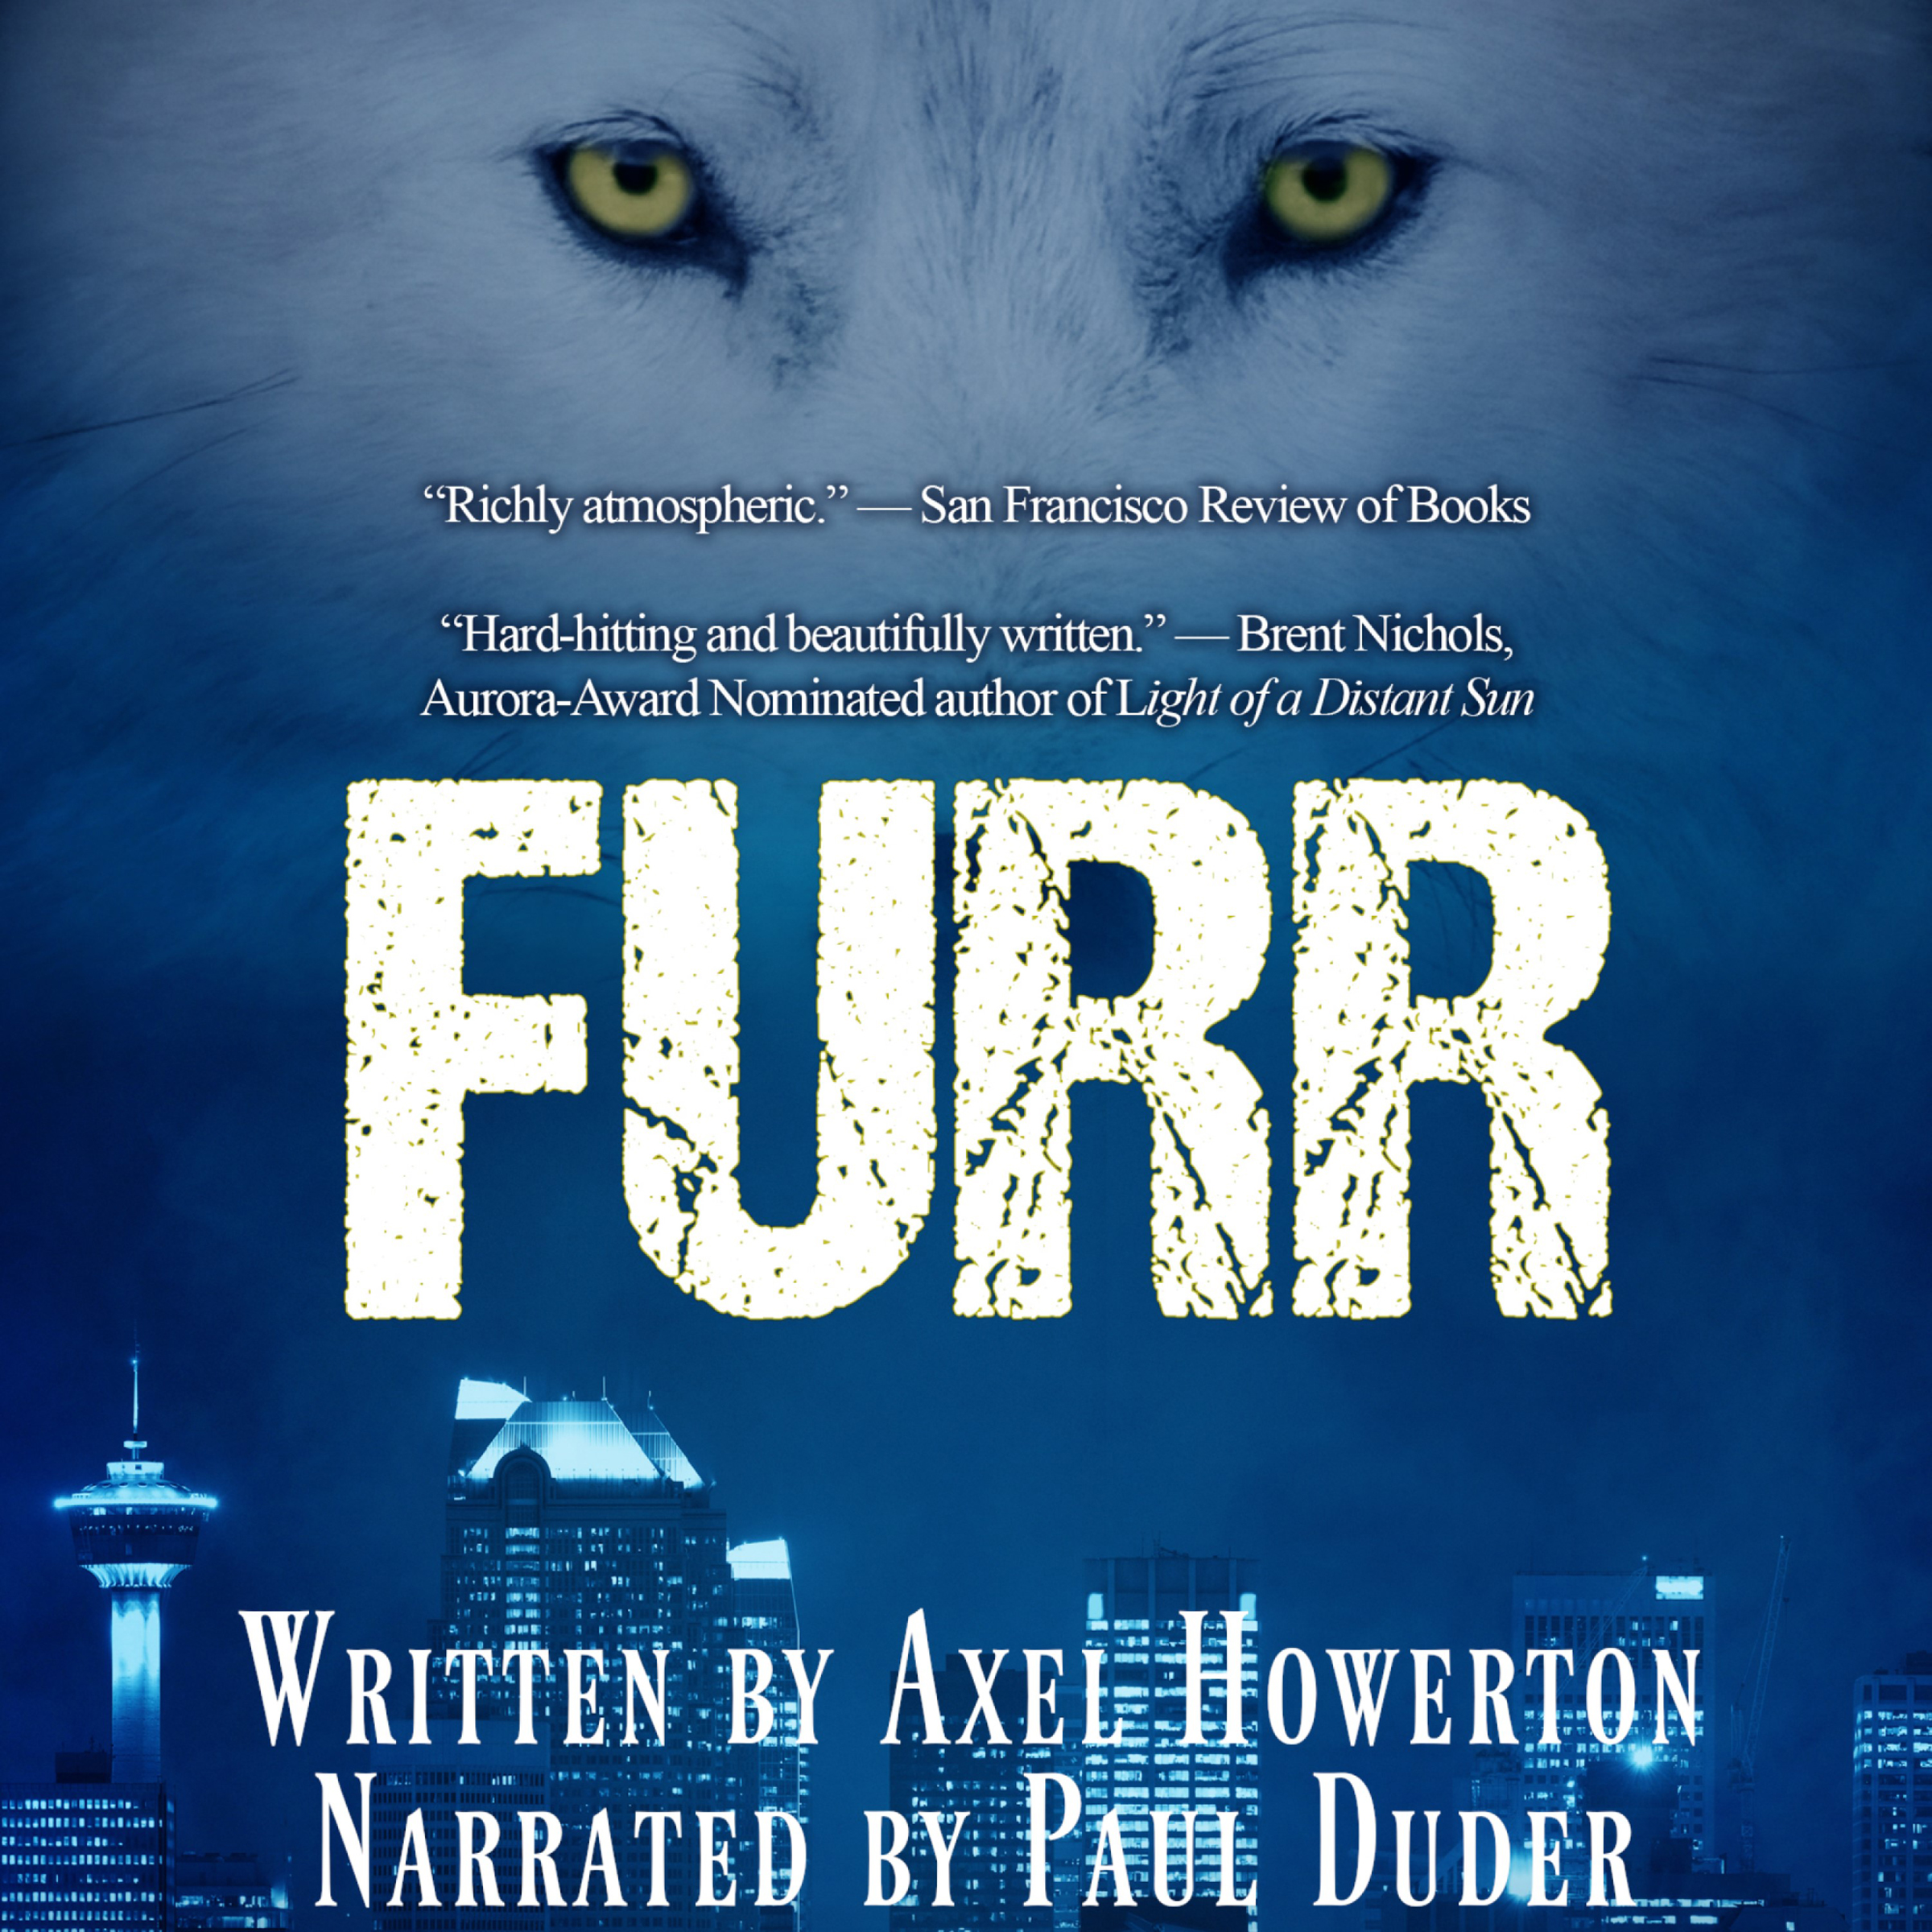 Furr cover image